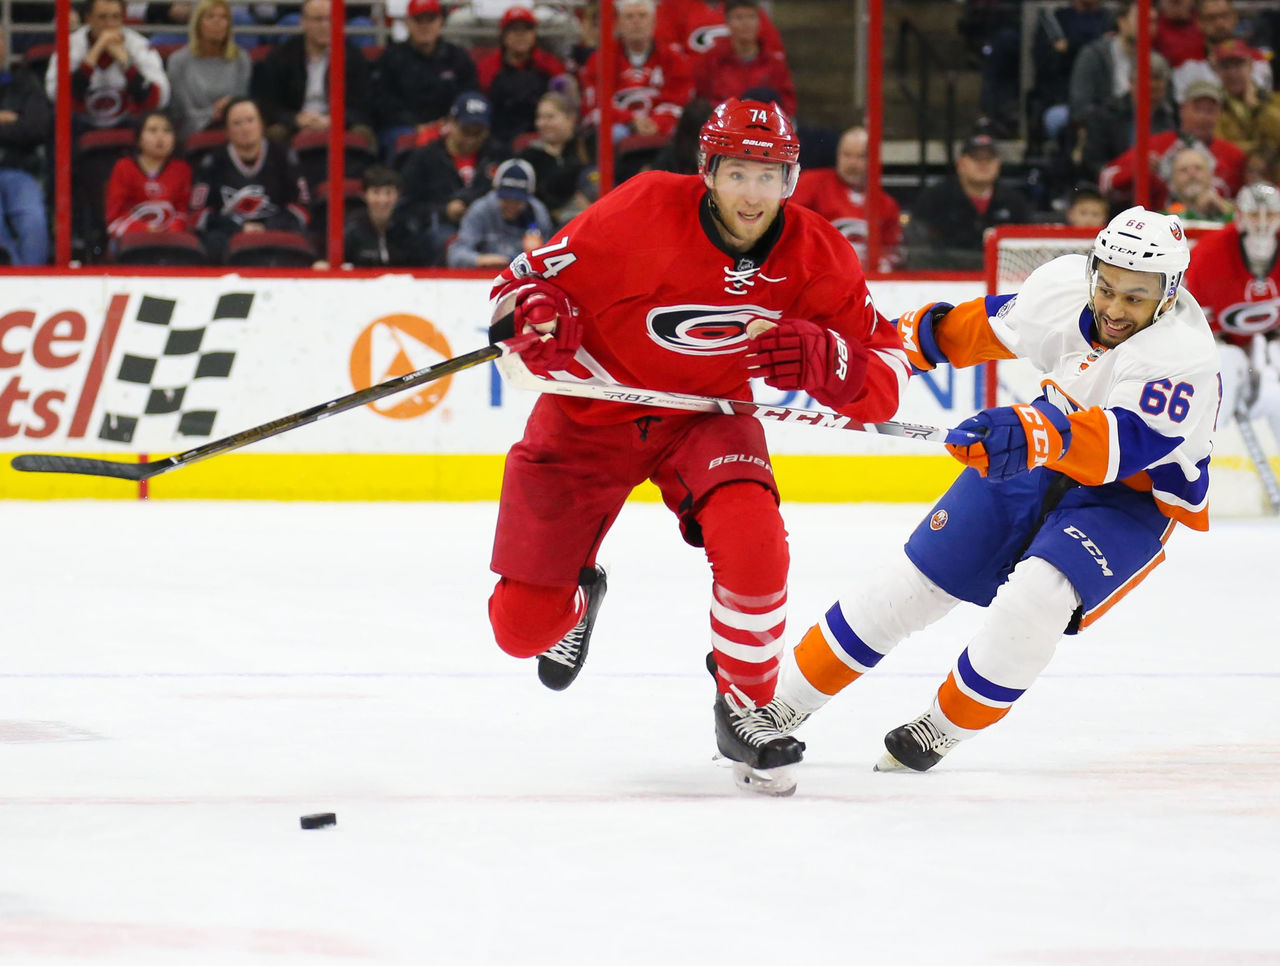 Cropped 2017 03 15t015642z 881942116 nocid rtrmadp 3 nhl new york islanders at carolina hurricanes